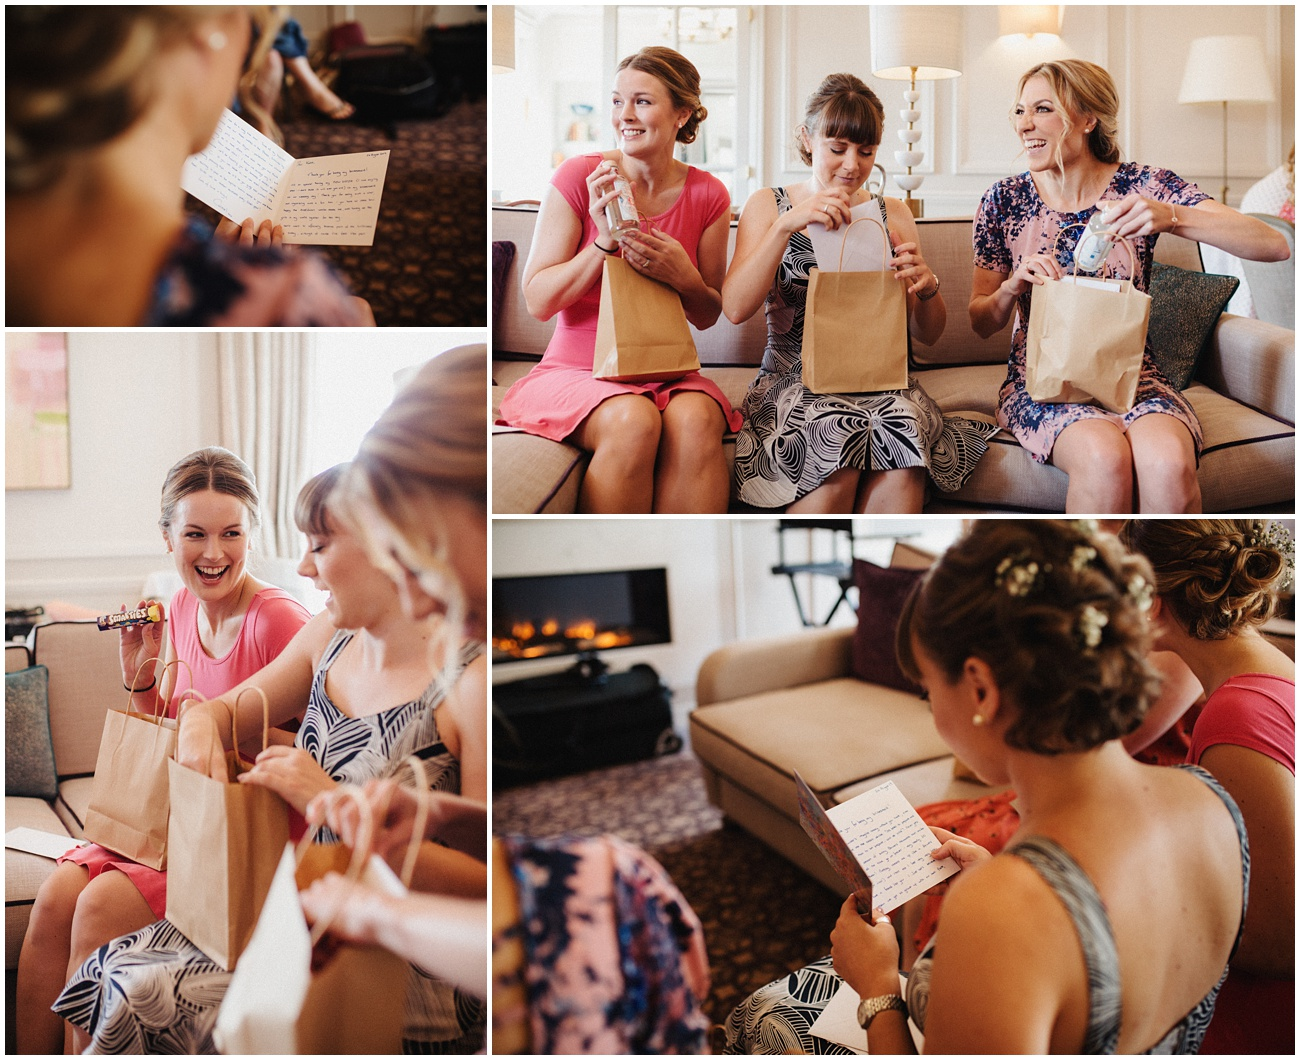 The bridesmaids open their gifts from the bride in their hotel room